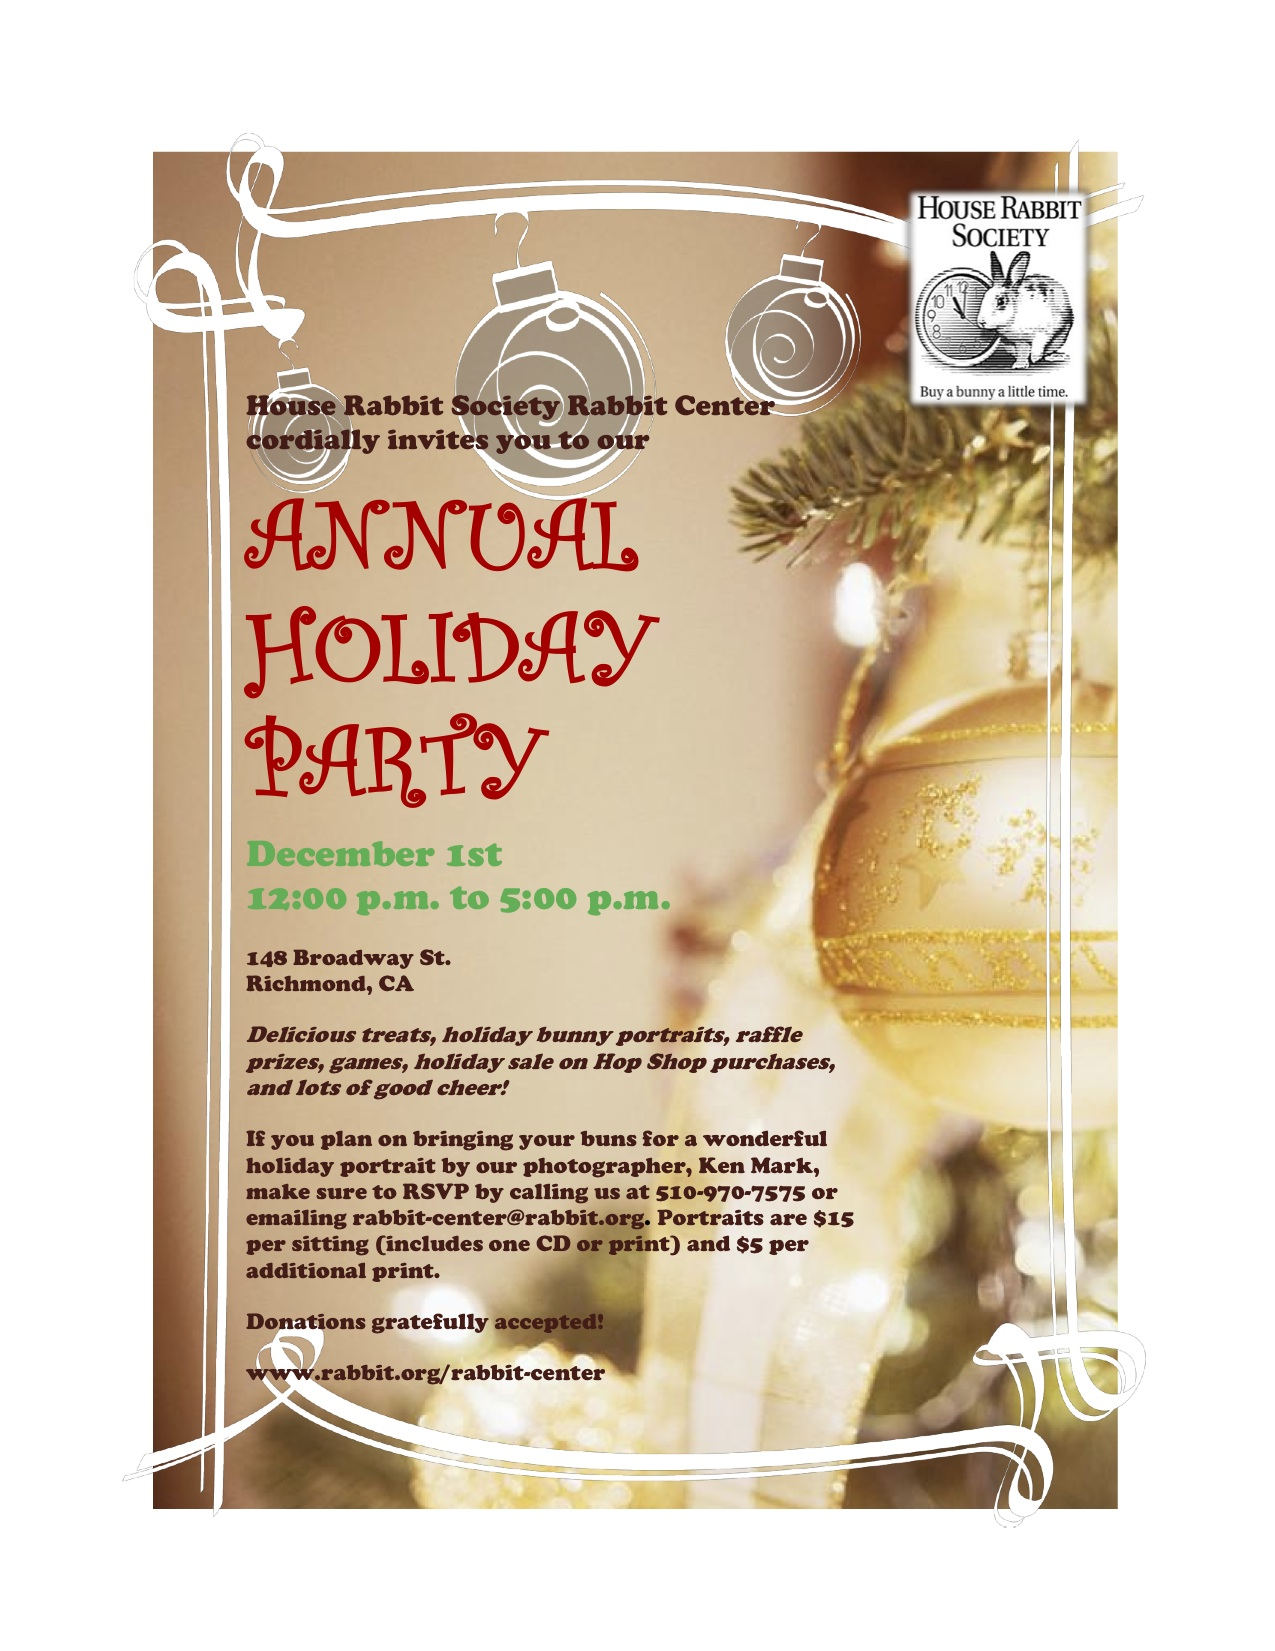 Holiday party invitation-1 | House Rabbit Society Adoption and ...